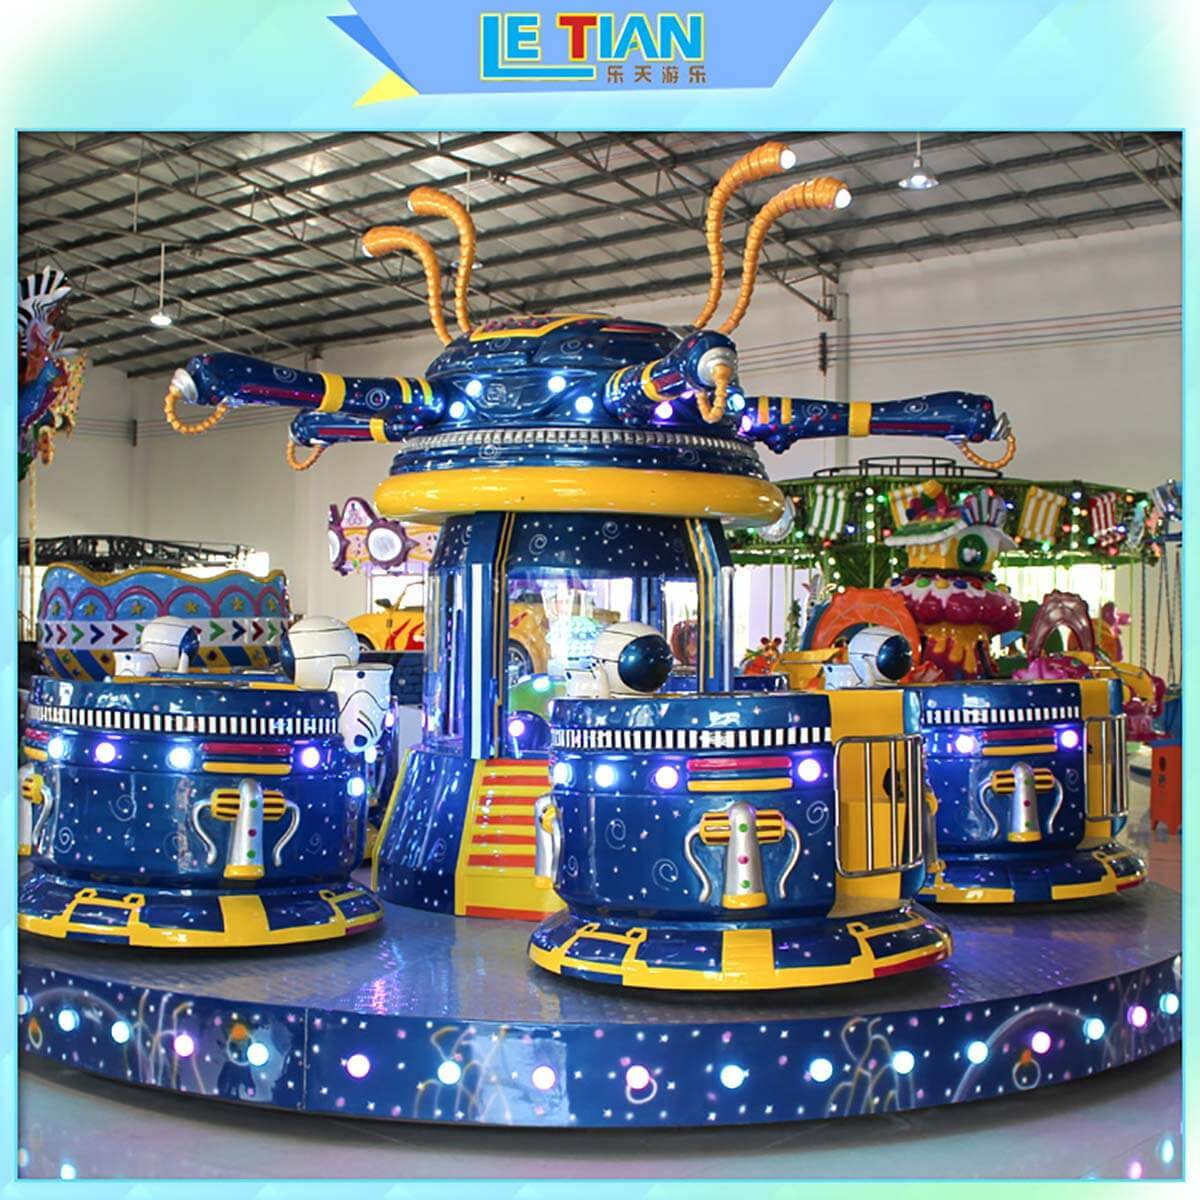 LETIAN amusing outdoor playground equipment facility theme park-2